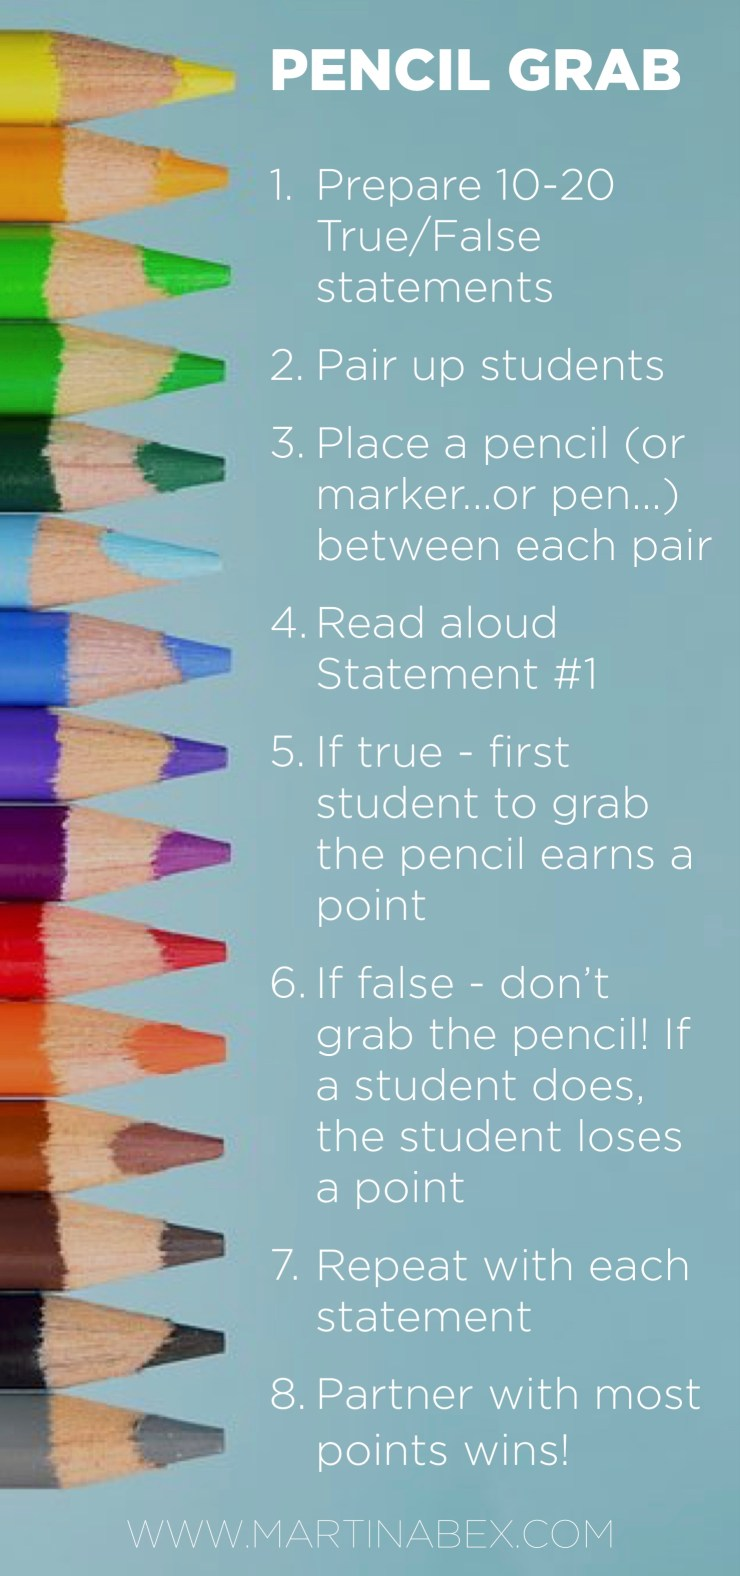 Pencil Grab is a super easy game to use in your classes: students play in pairs, and all they need is a pencil! All YOU need is a list of a T/F statements--which you can make up on the fly!